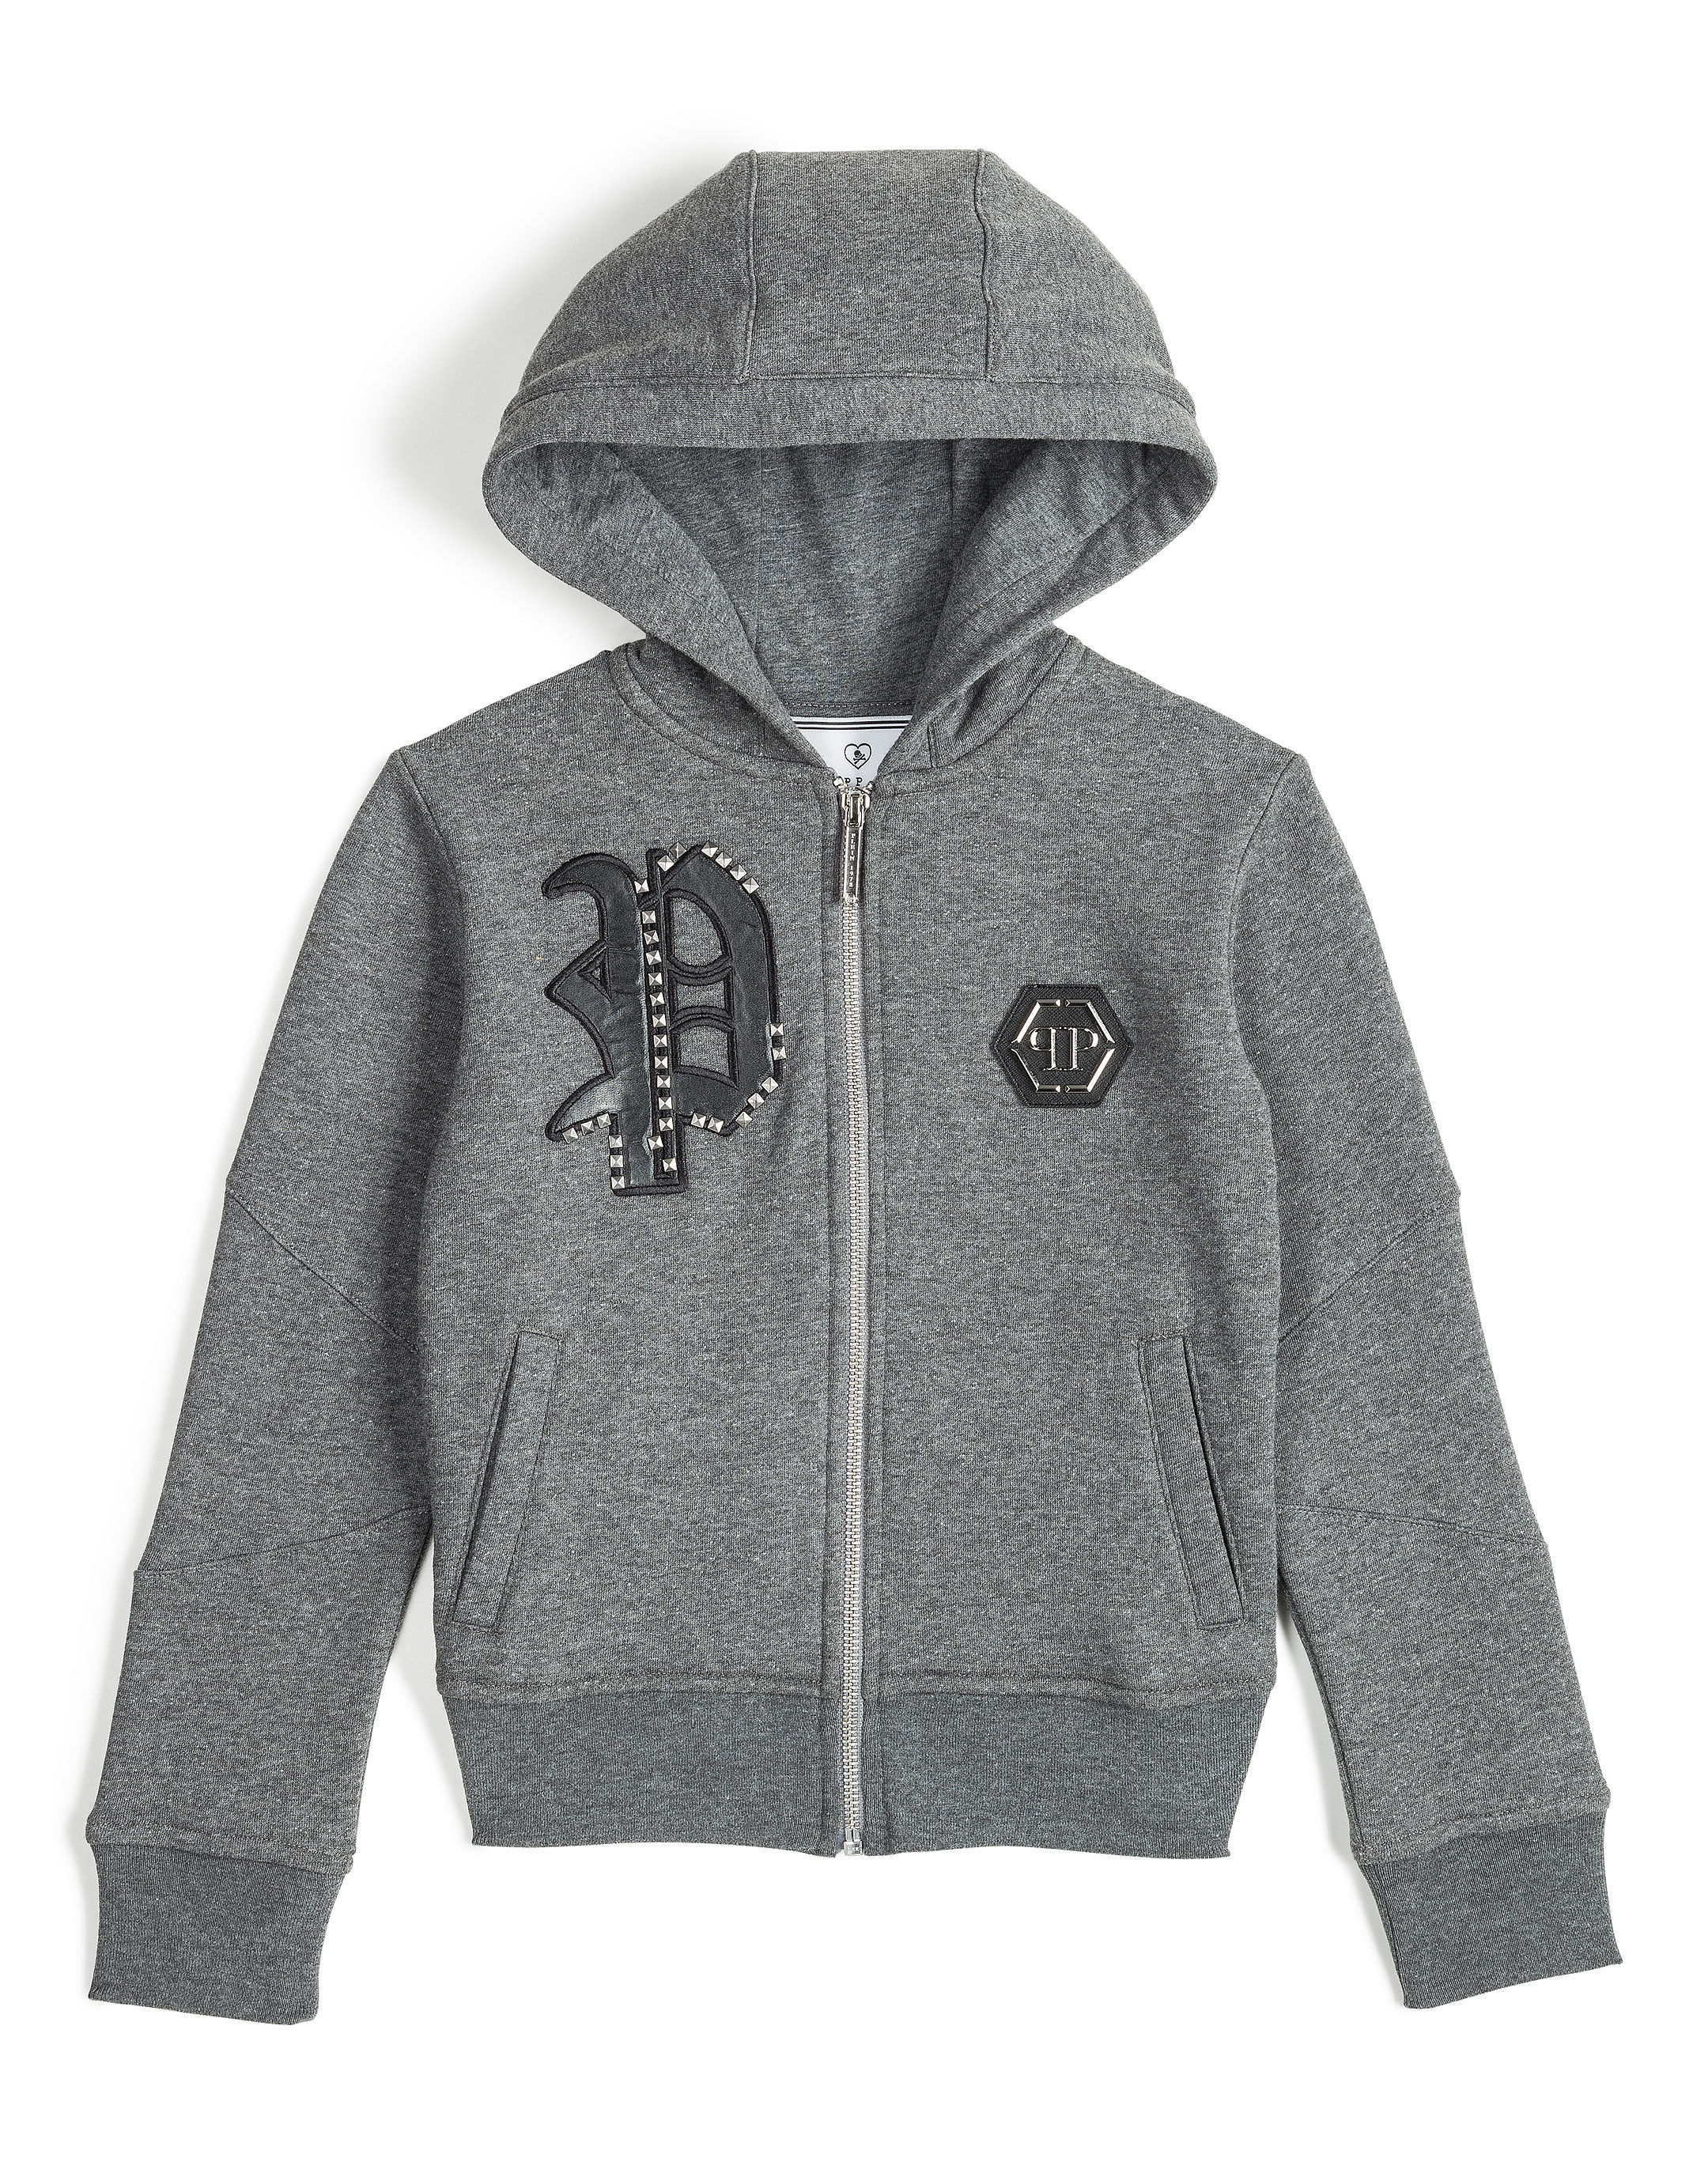 Kids' Clothing onPhilipp Plein Outlet: Luxury Boy's Clothing